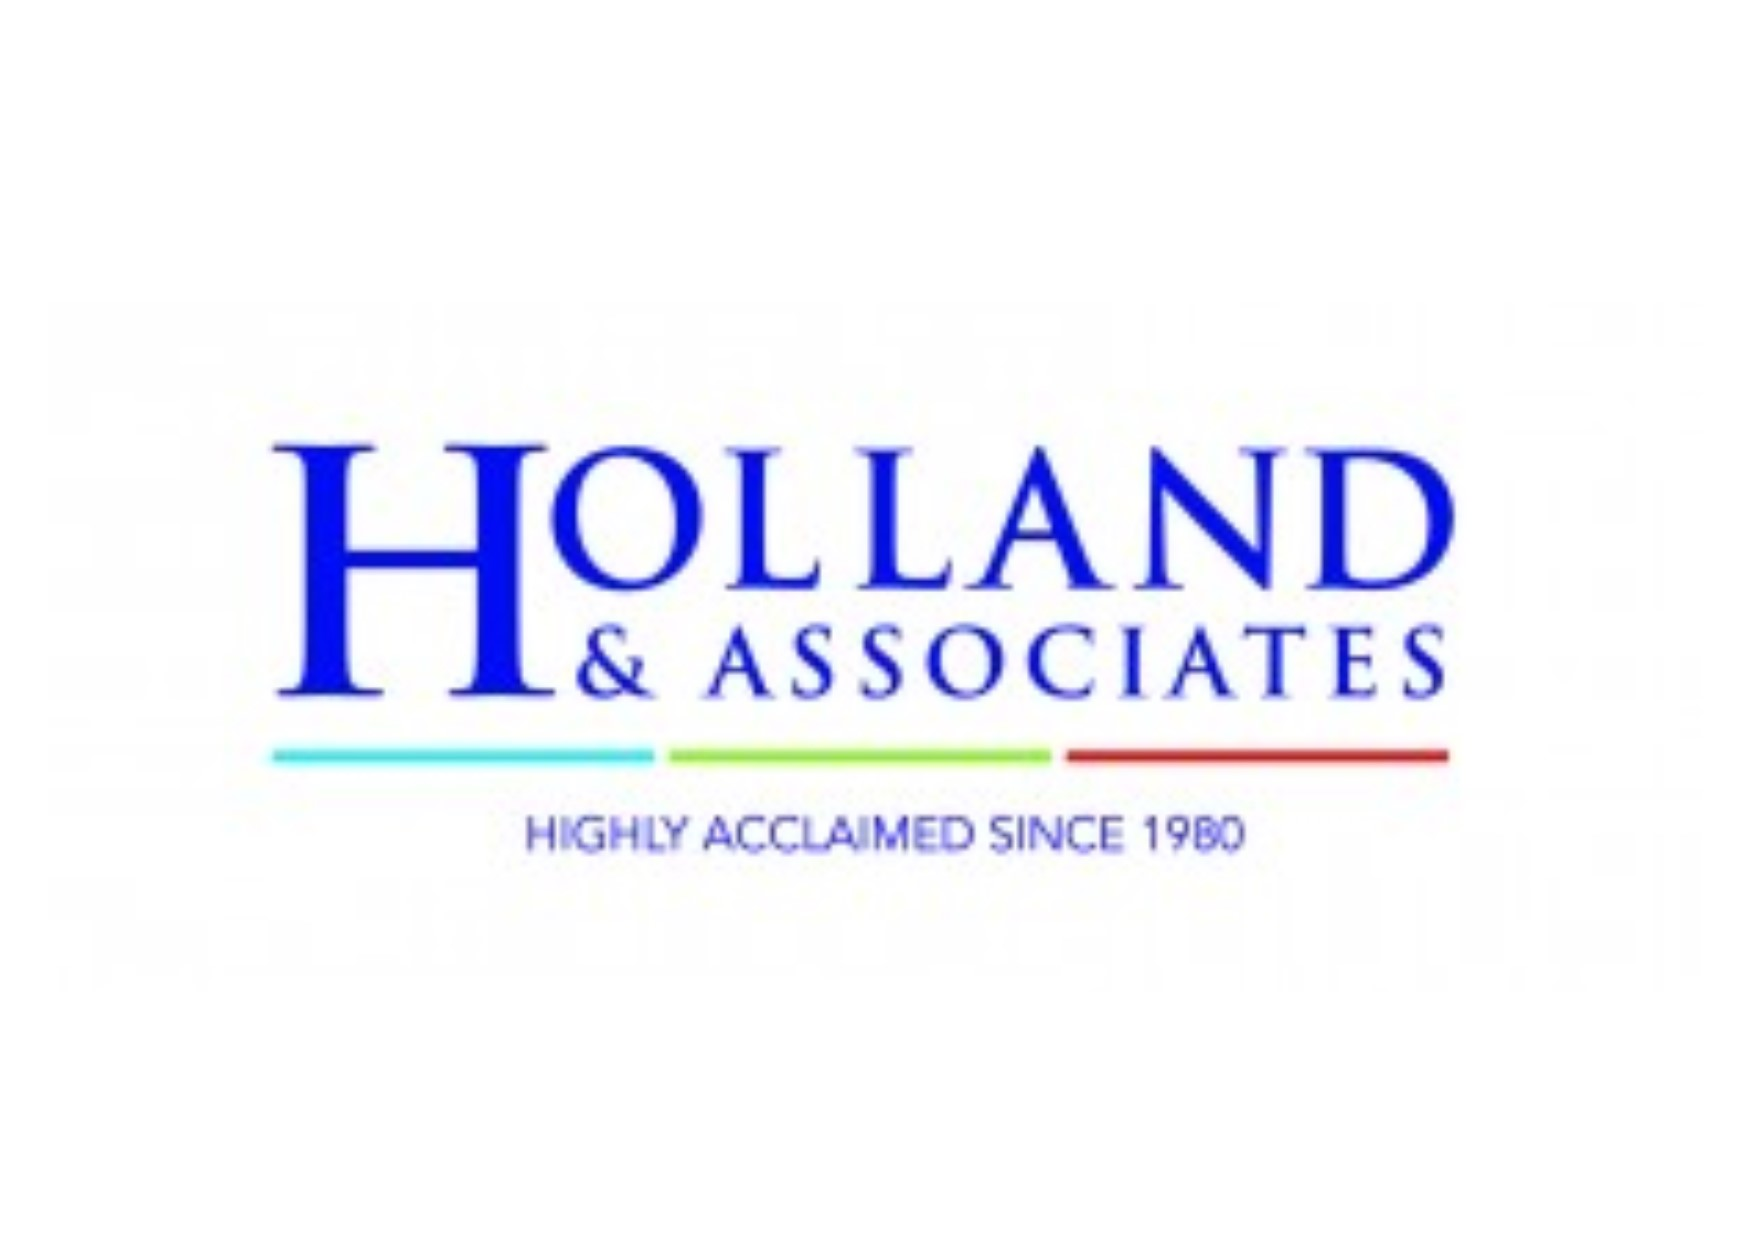 D Holland and Associates Insurance Brokers